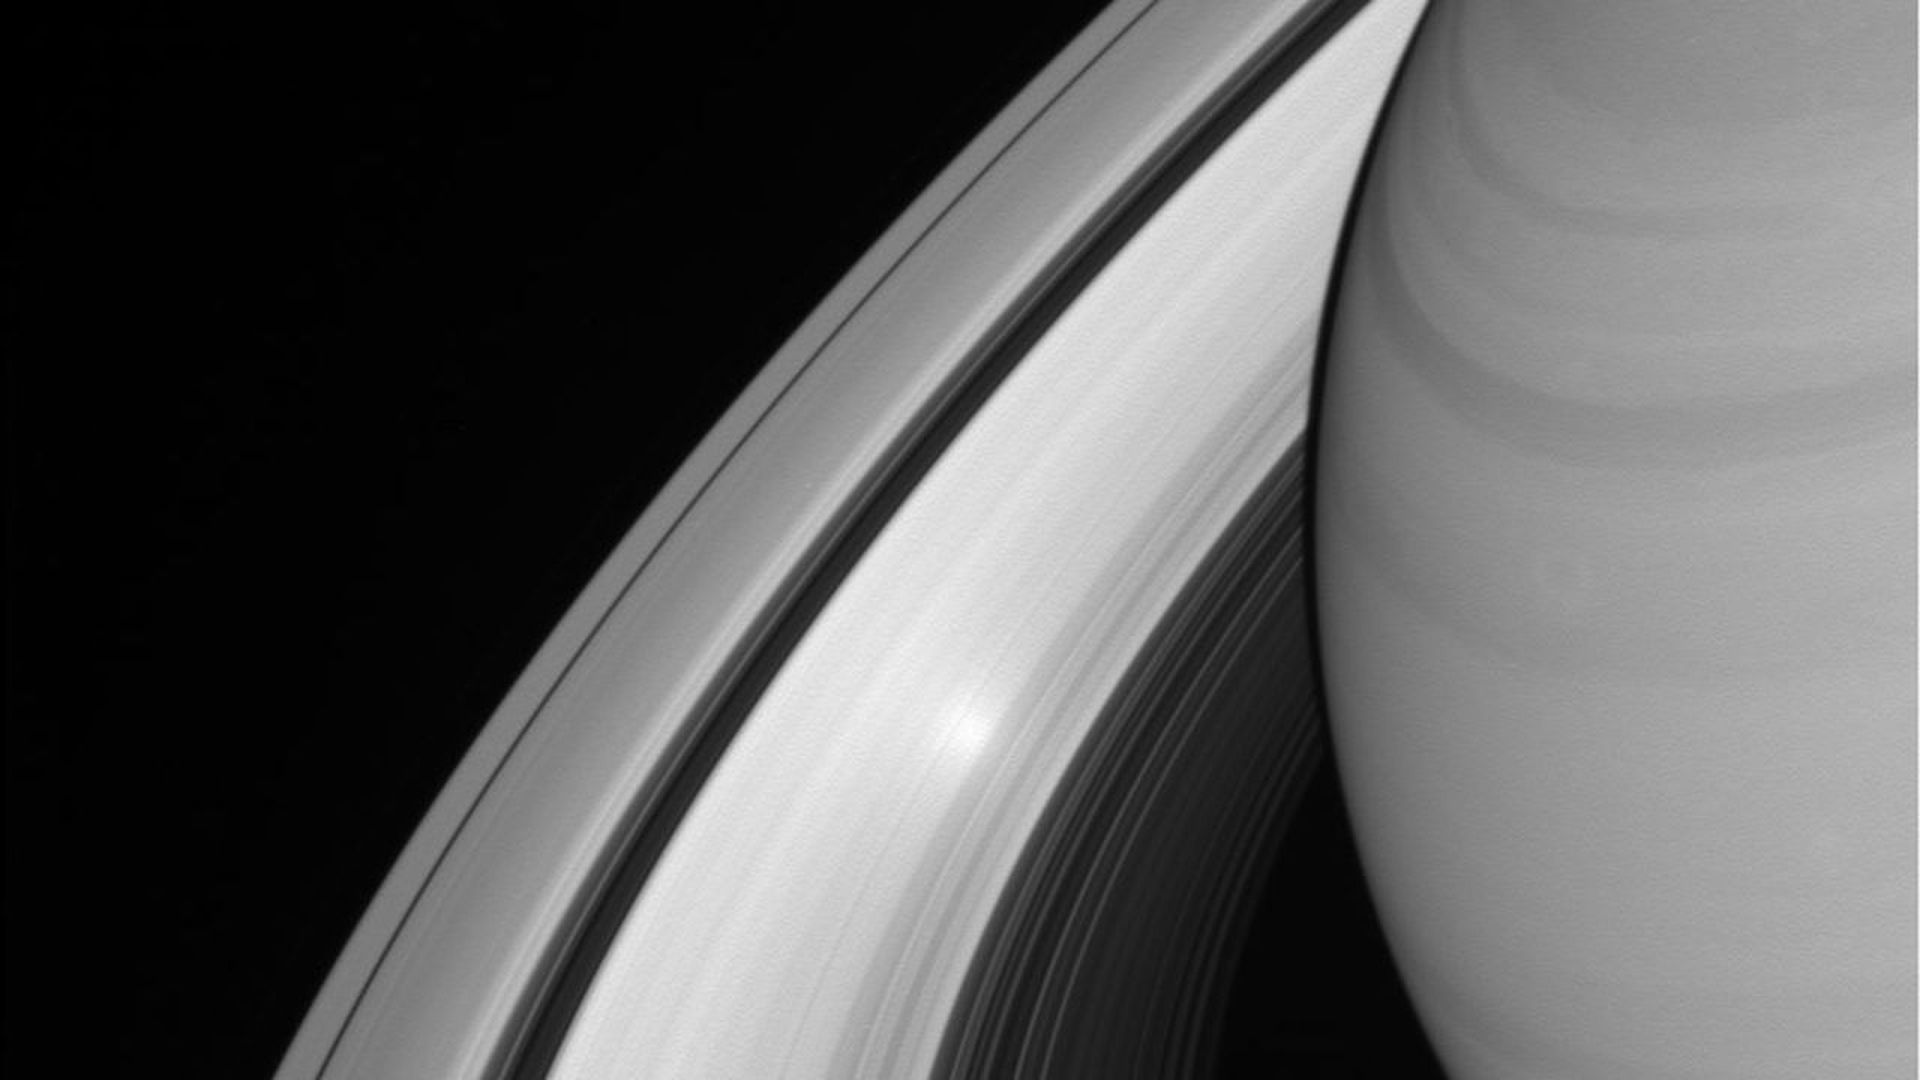 Saturn as seen by Cassini. Photo: NASA/JPL-Caltech/SSI